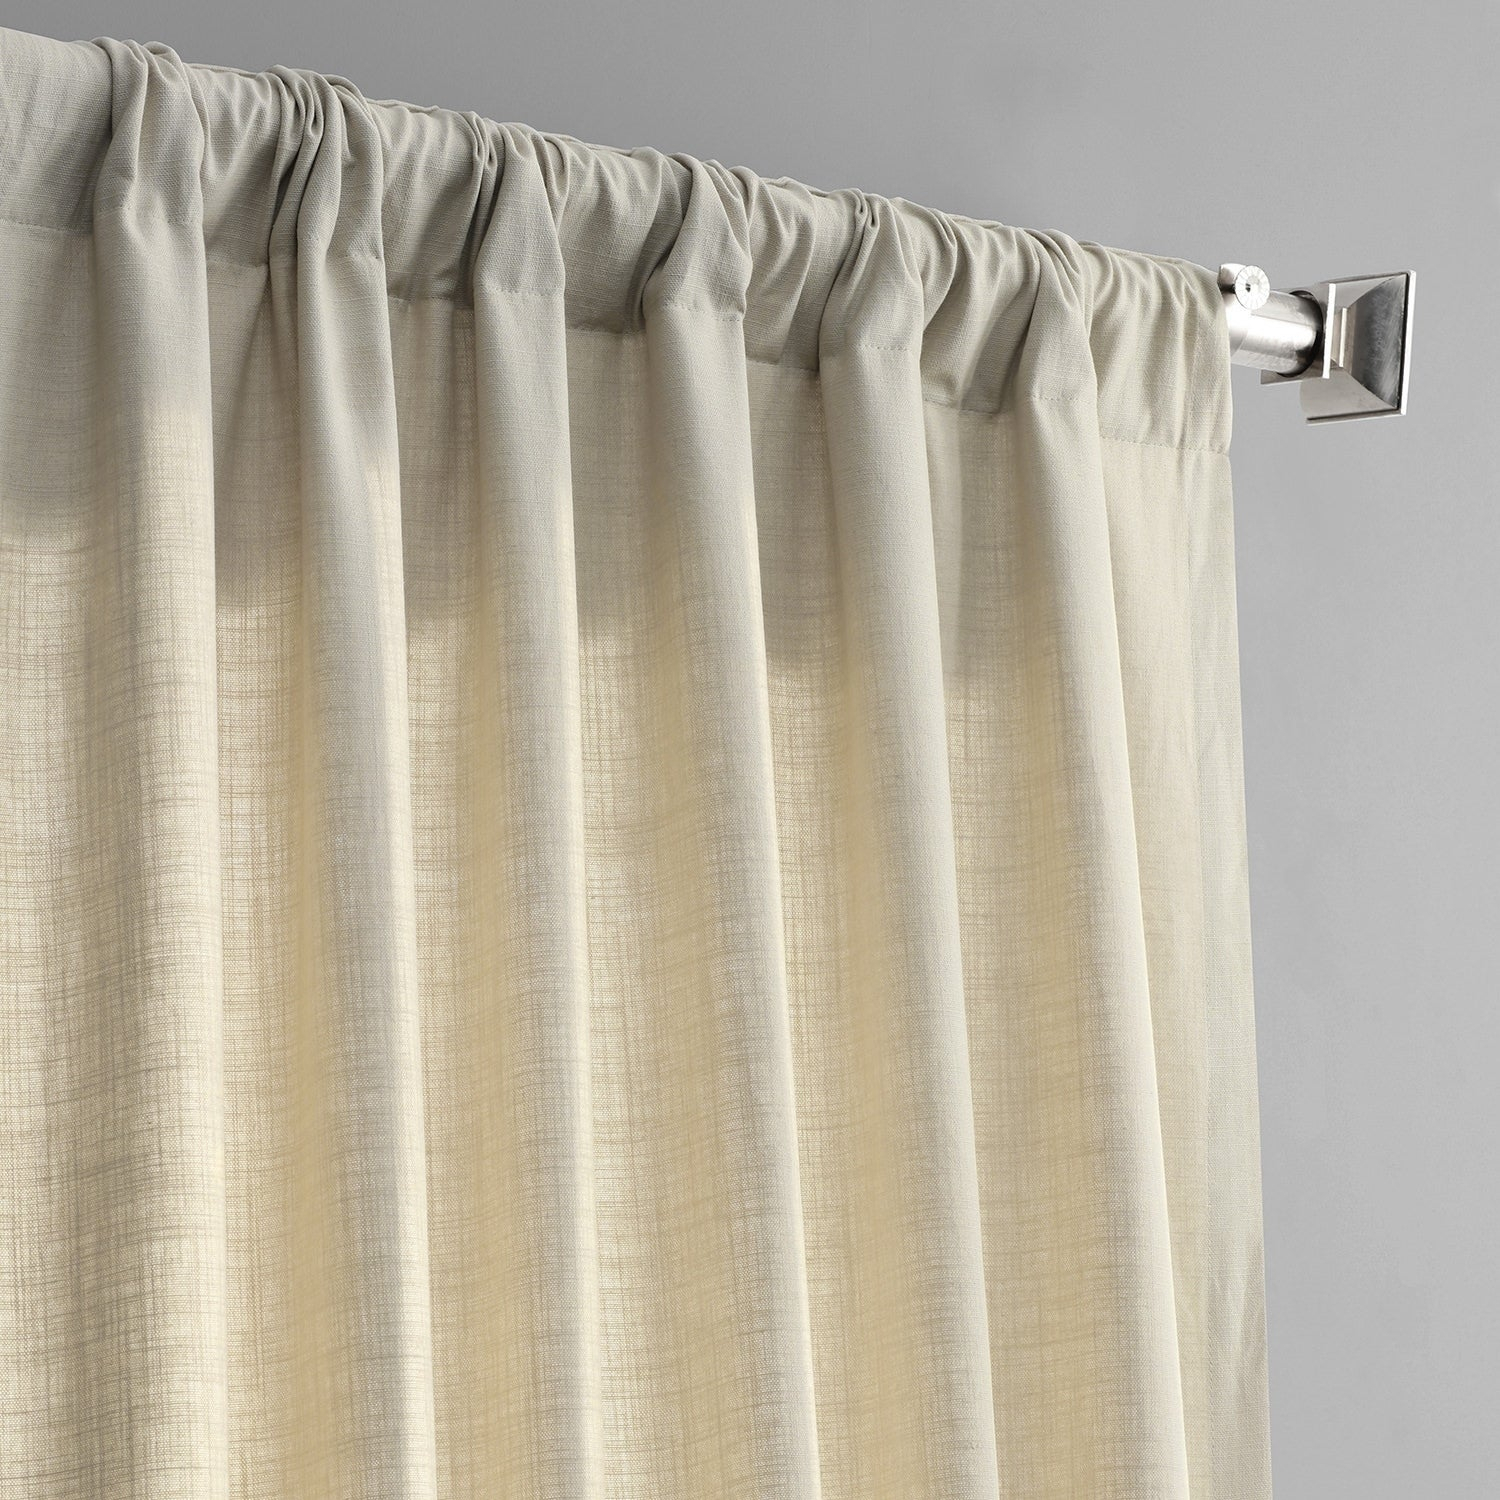 Exclusive Fabrics Solid Country Cotton Linen Weave Curtain Panel Pertaining To Solid Country Cotton Linen Weave Curtain Panels (View 4 of 30)